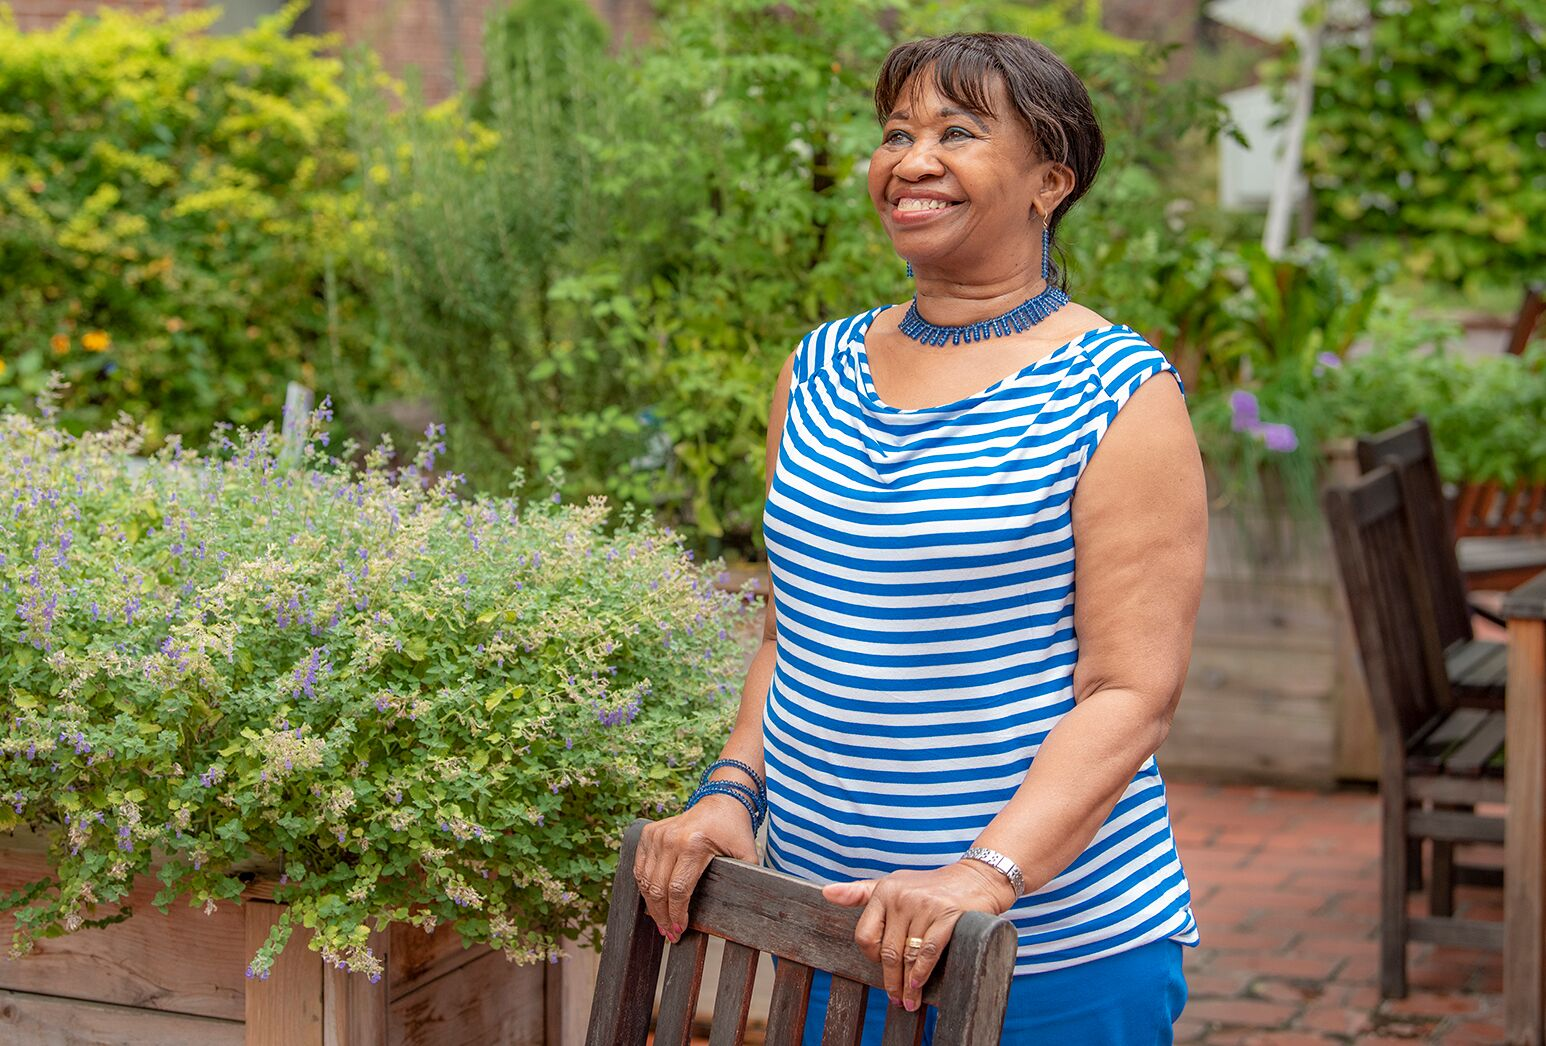 African American woman in blue and white striped top in a patio garden.